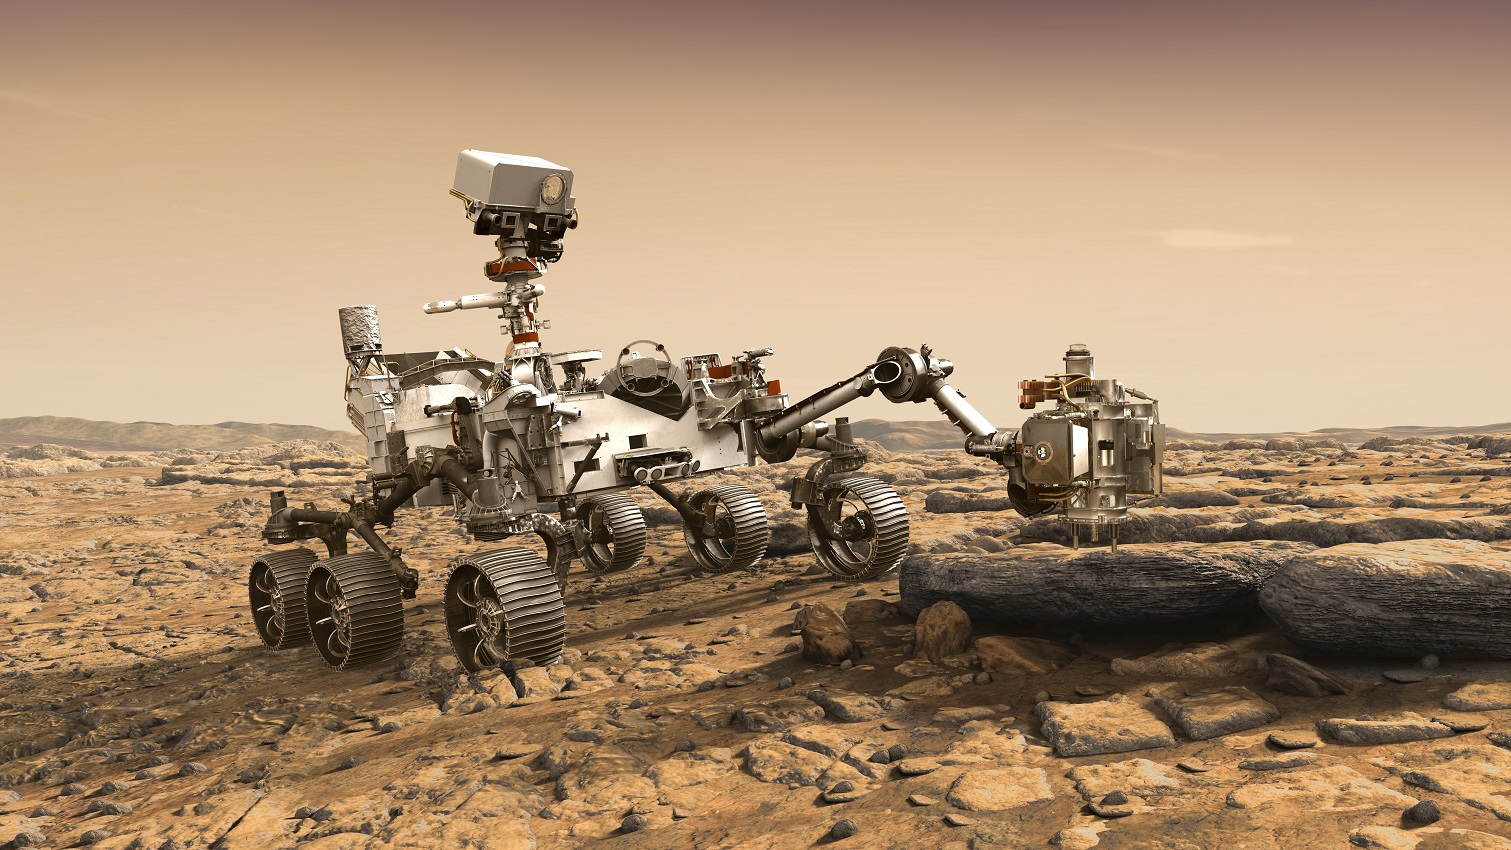 The Objectives of NASA's 2020 Mars Exploration Program